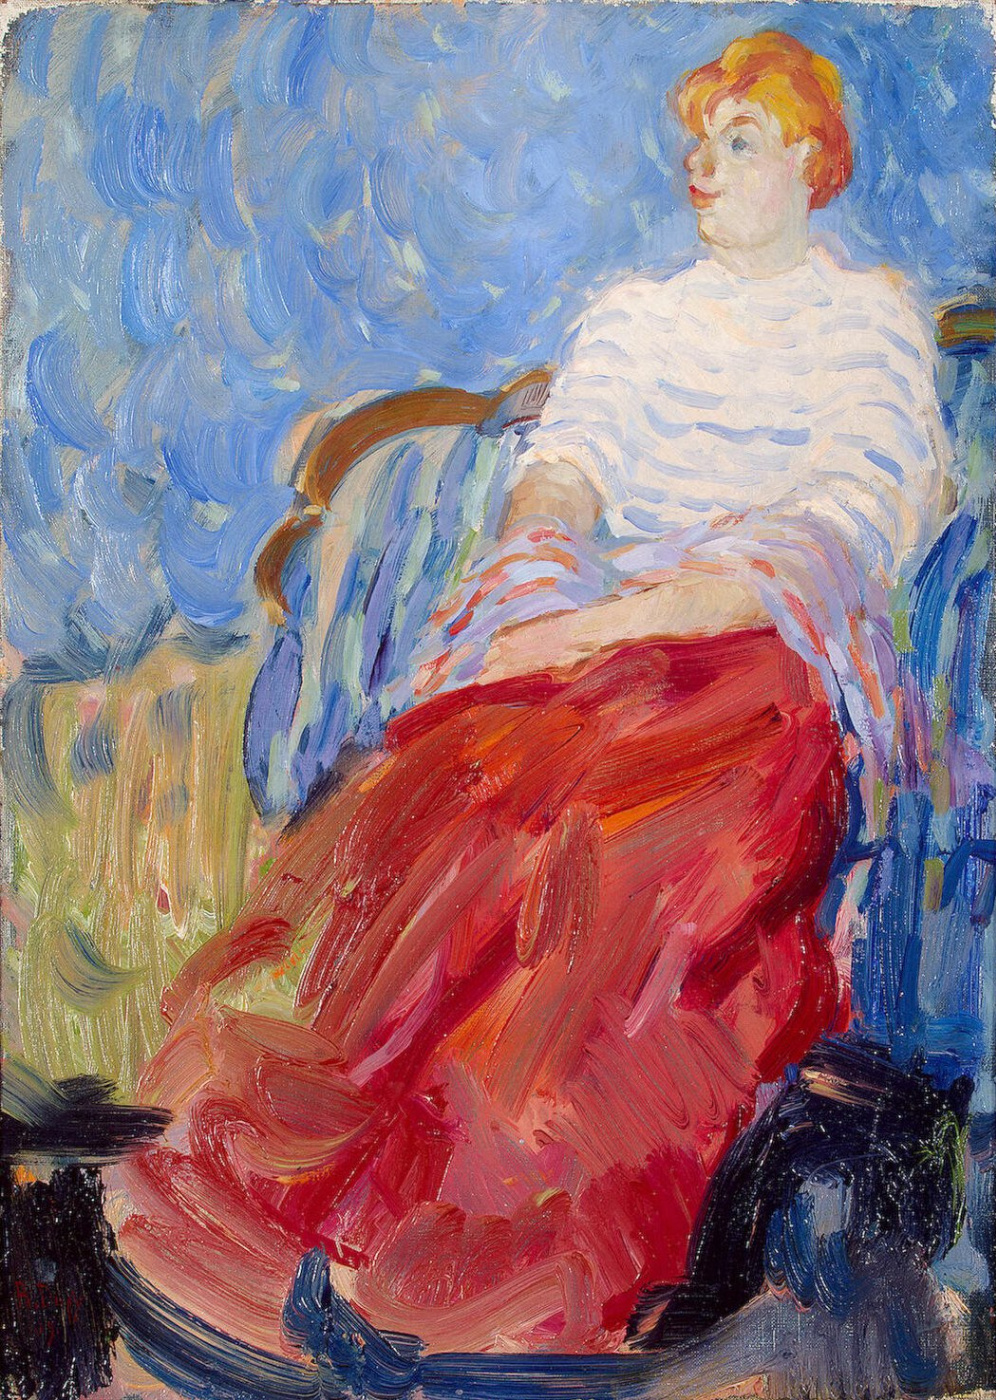 Raoul Dufy. Portrait of Susanne Dufy, sister of the artist